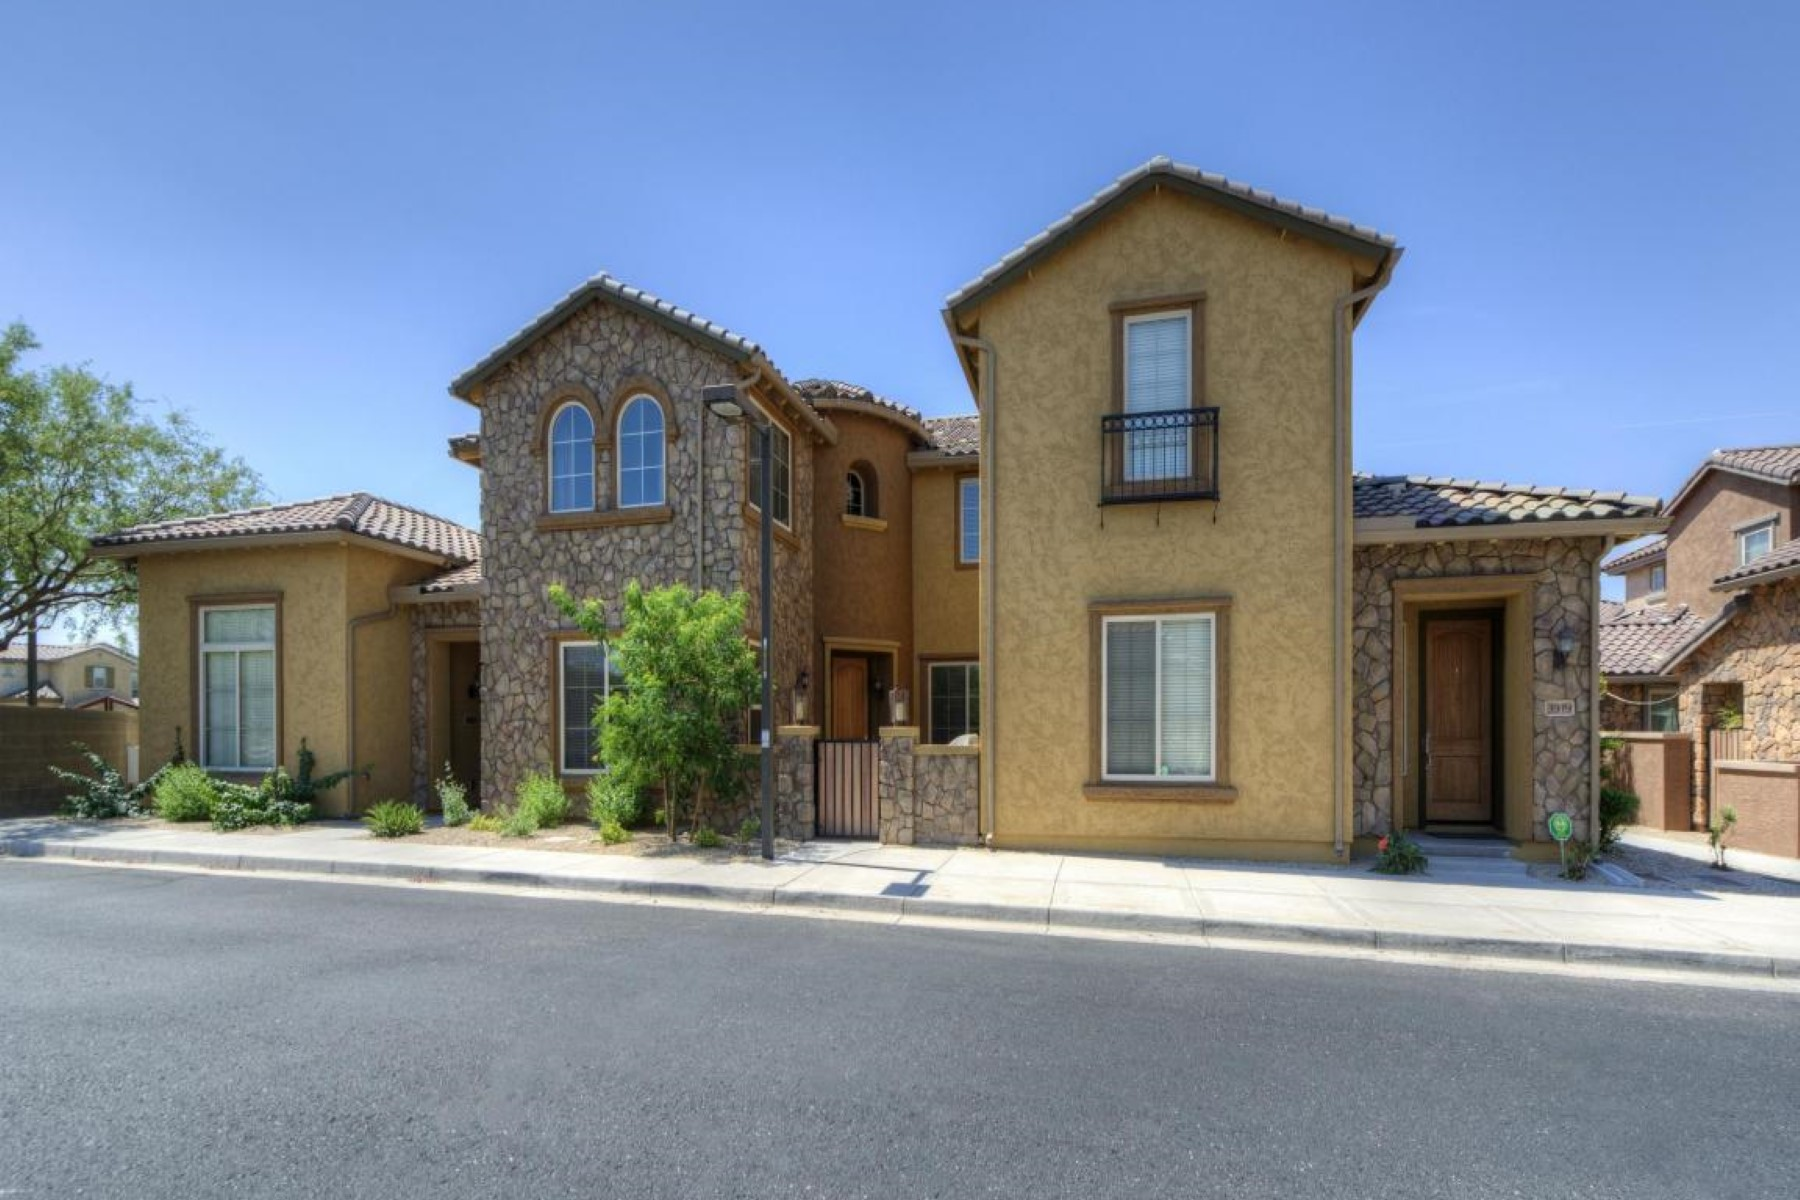 Single Family Home for Sale at Luxury, low maintenance townhome in a gated community. 3923 E CAT BALUE DR Phoenix, Arizona 85050 United States